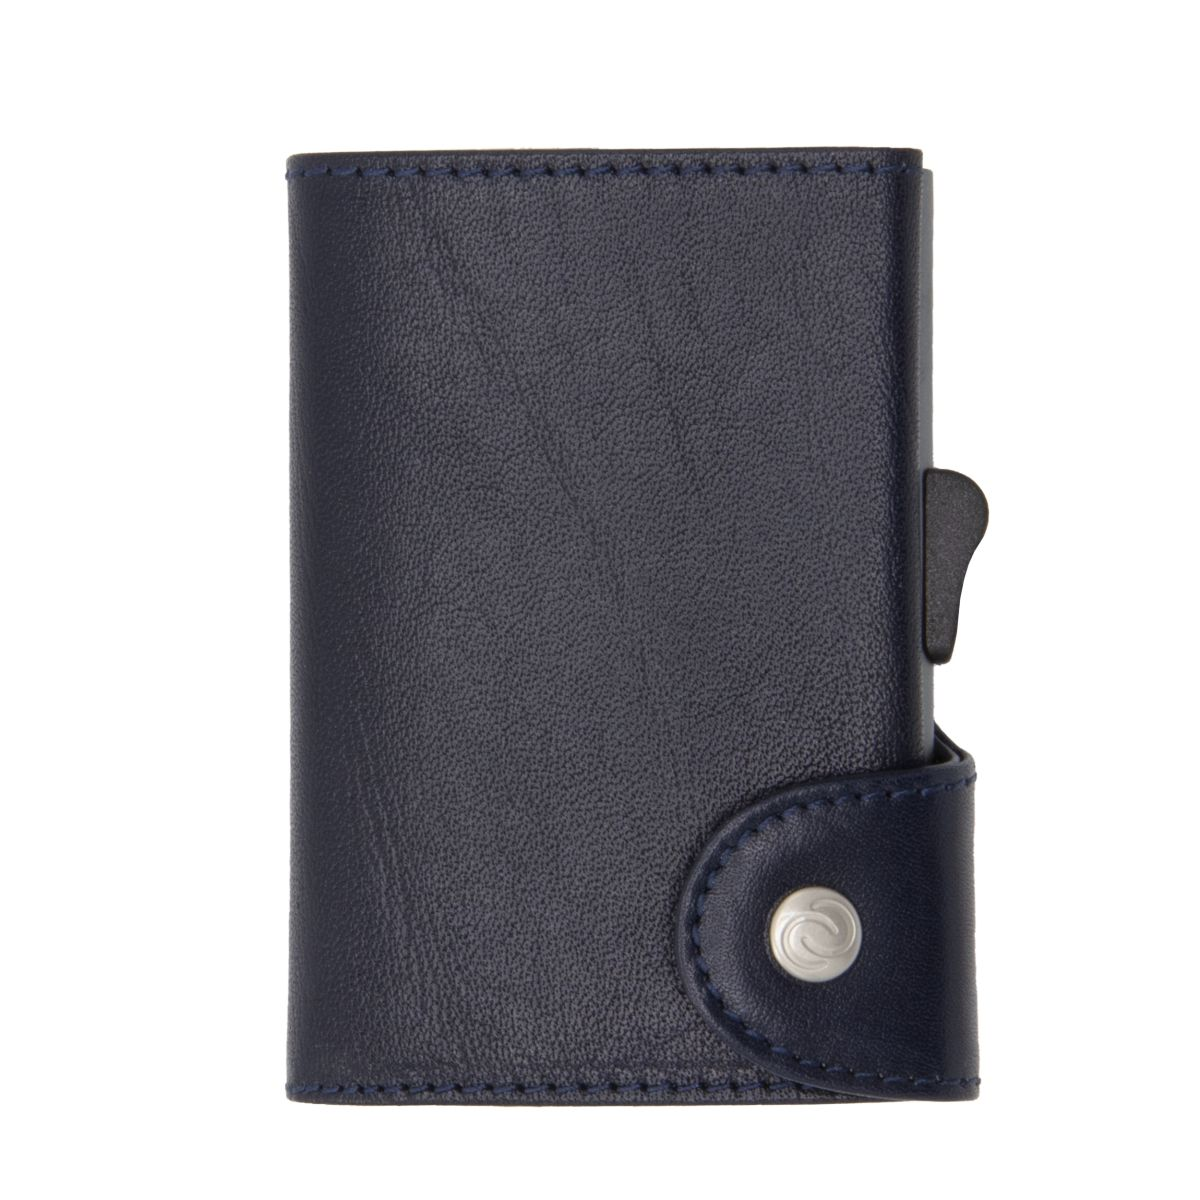 C-Secure XL Aluminum Wallet with Vegetable Genuine Leather - Blue Montana